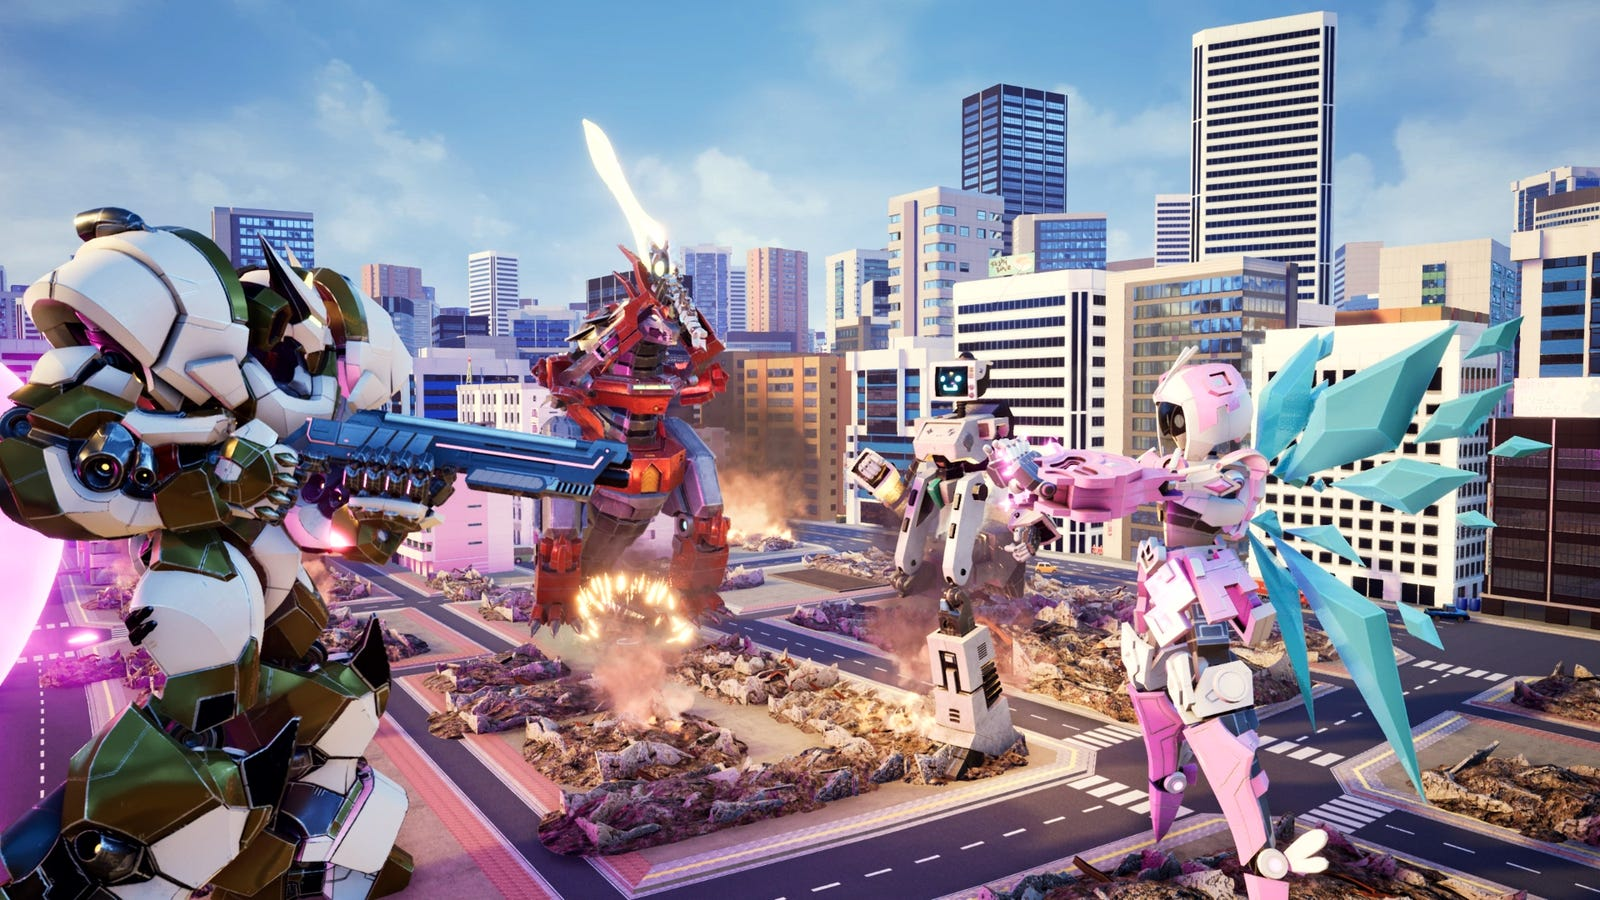 Giant Mech Fighting Game Will Crush Cities Underfoot